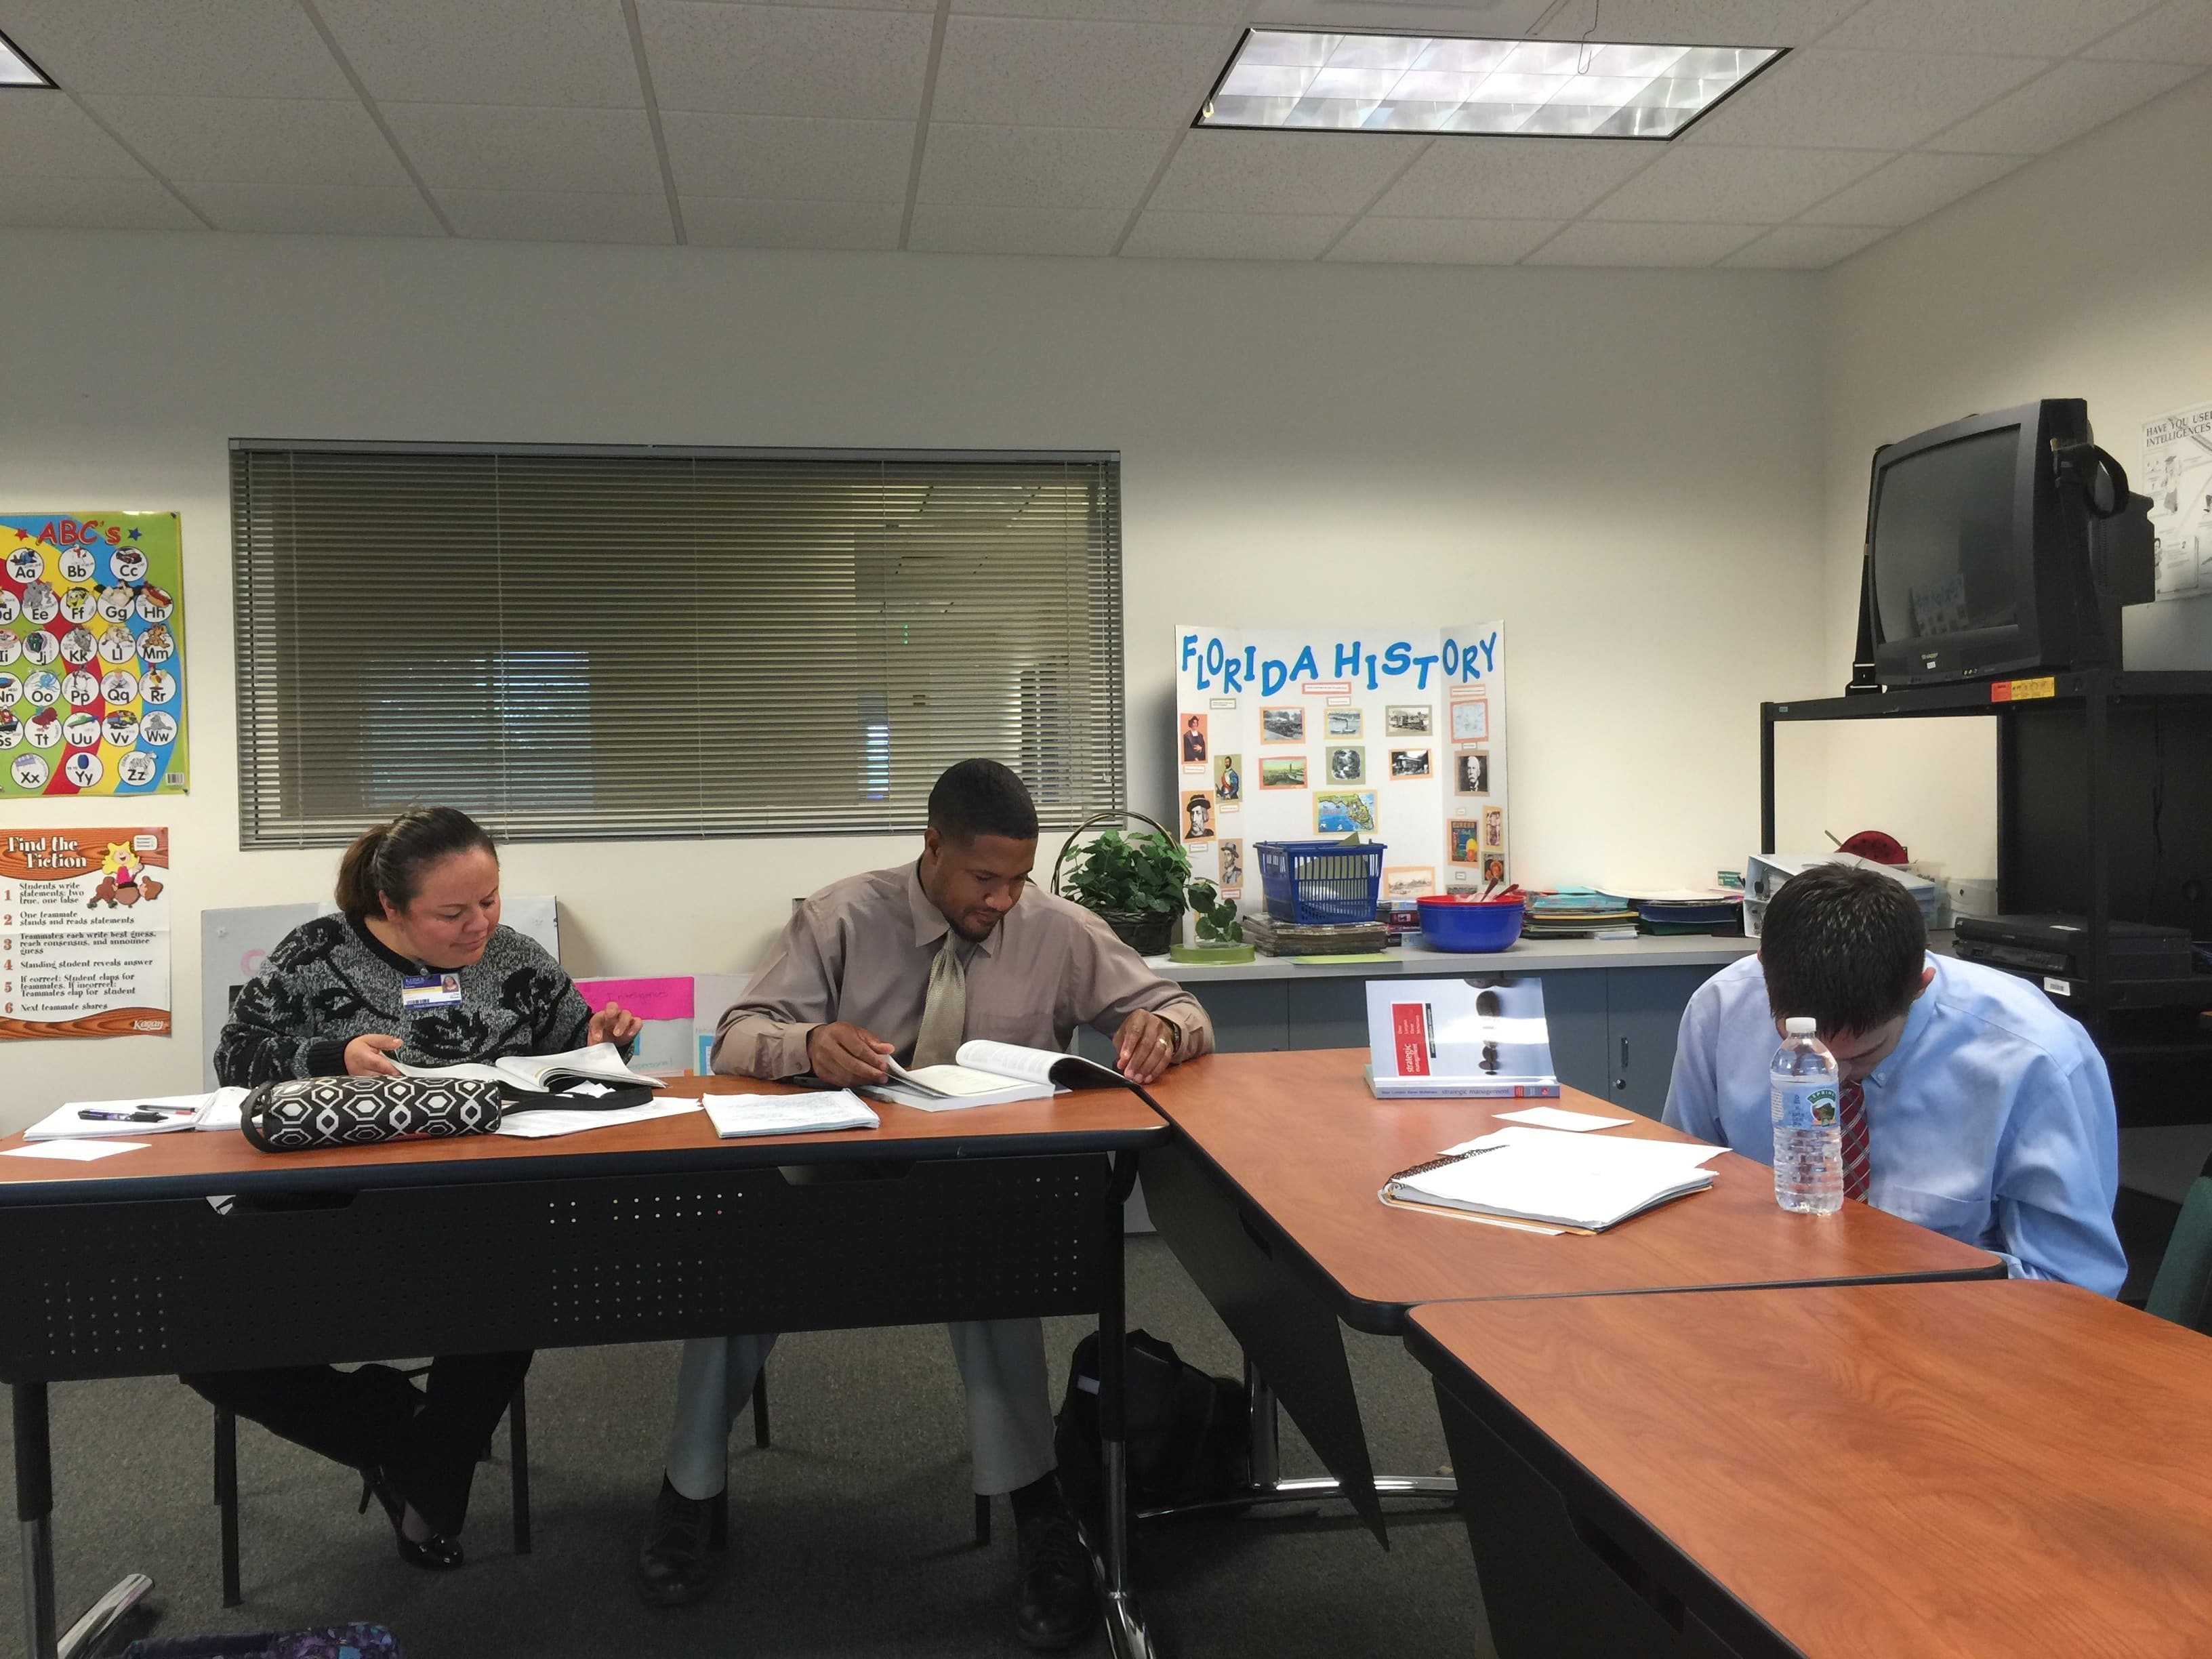 Students Participate in an Interactive Jeopardy Game in Sarasota